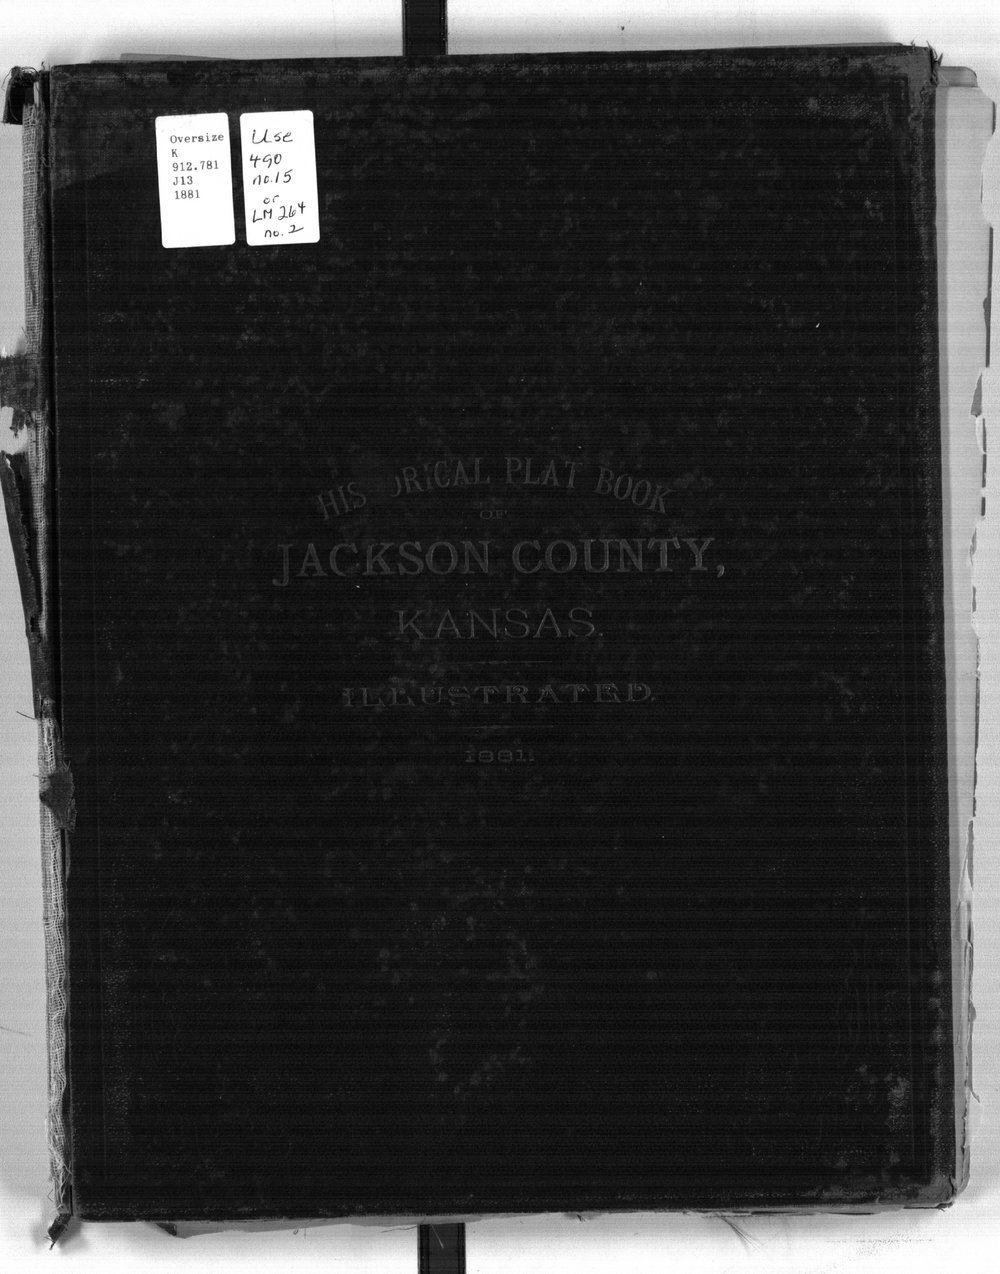 Historical Plat Book of Jackson County, Kansas - Front Cover